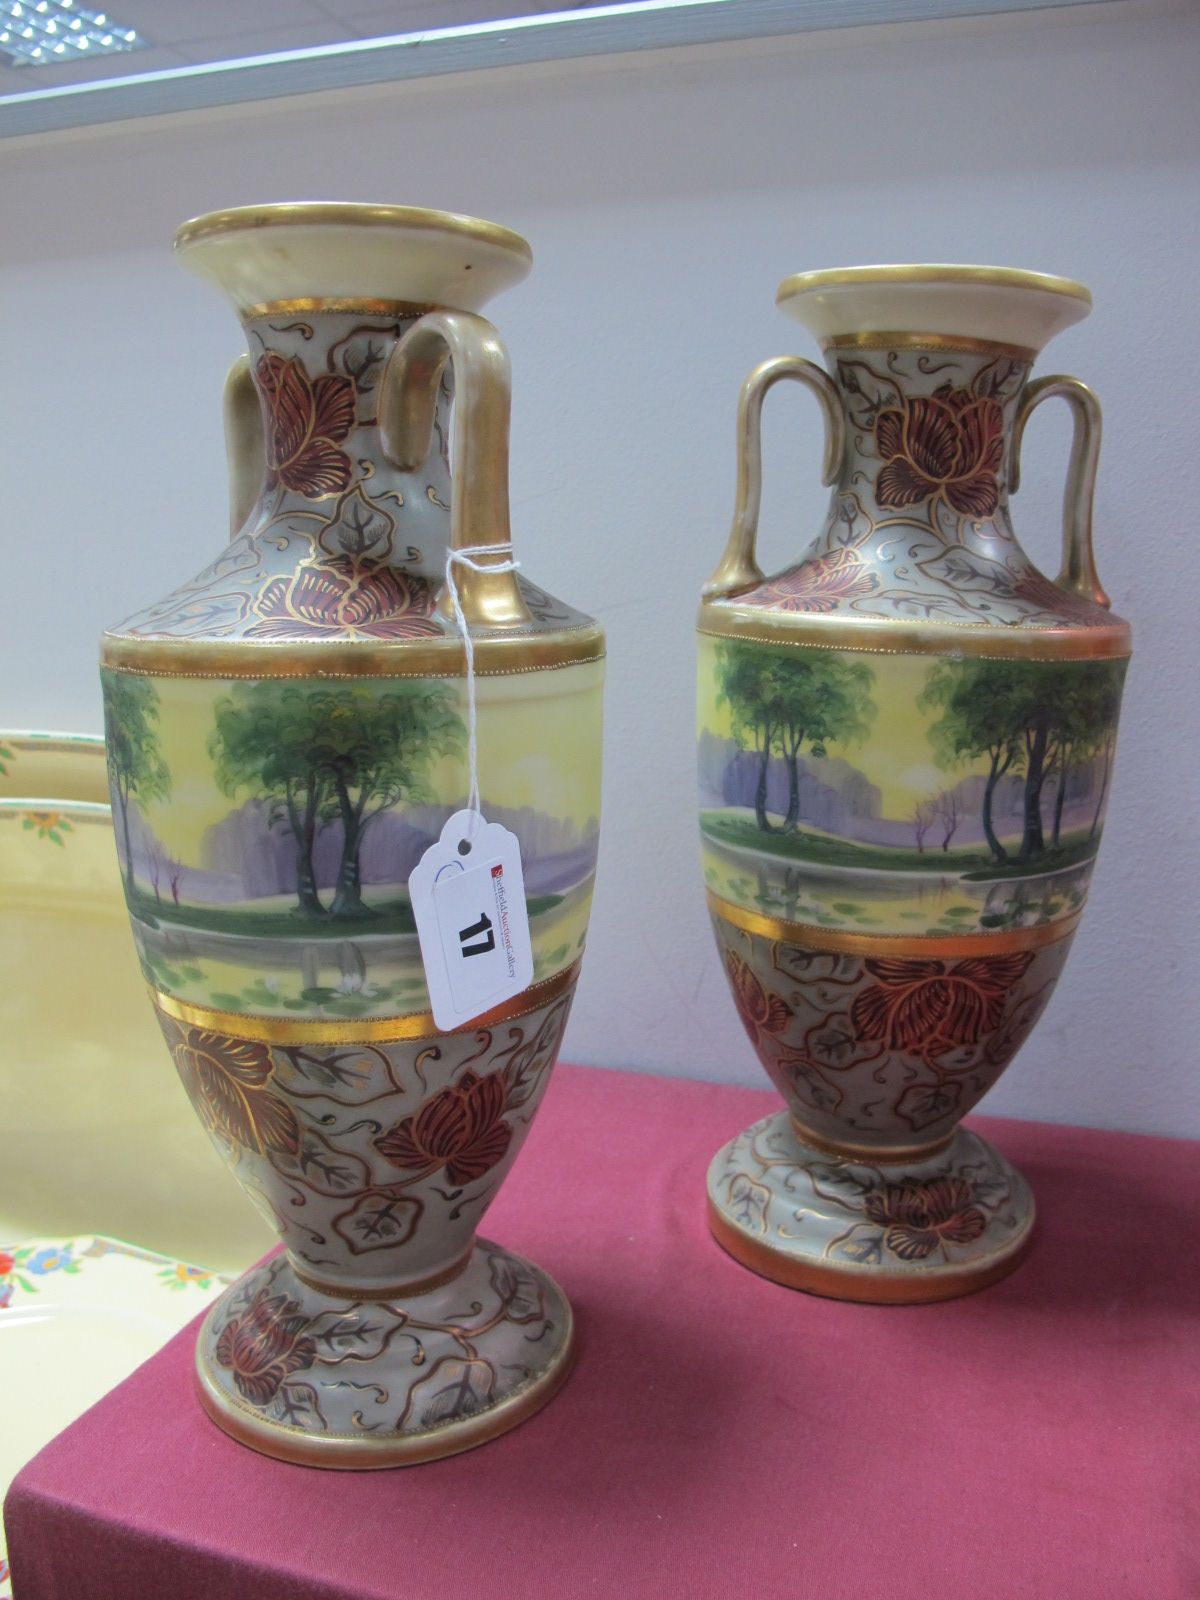 Lot 17 - *WITHDRAWN* A Pair of Noritake Ovoid Vases, circa 1920's, each handpainted with woodland landscapes,